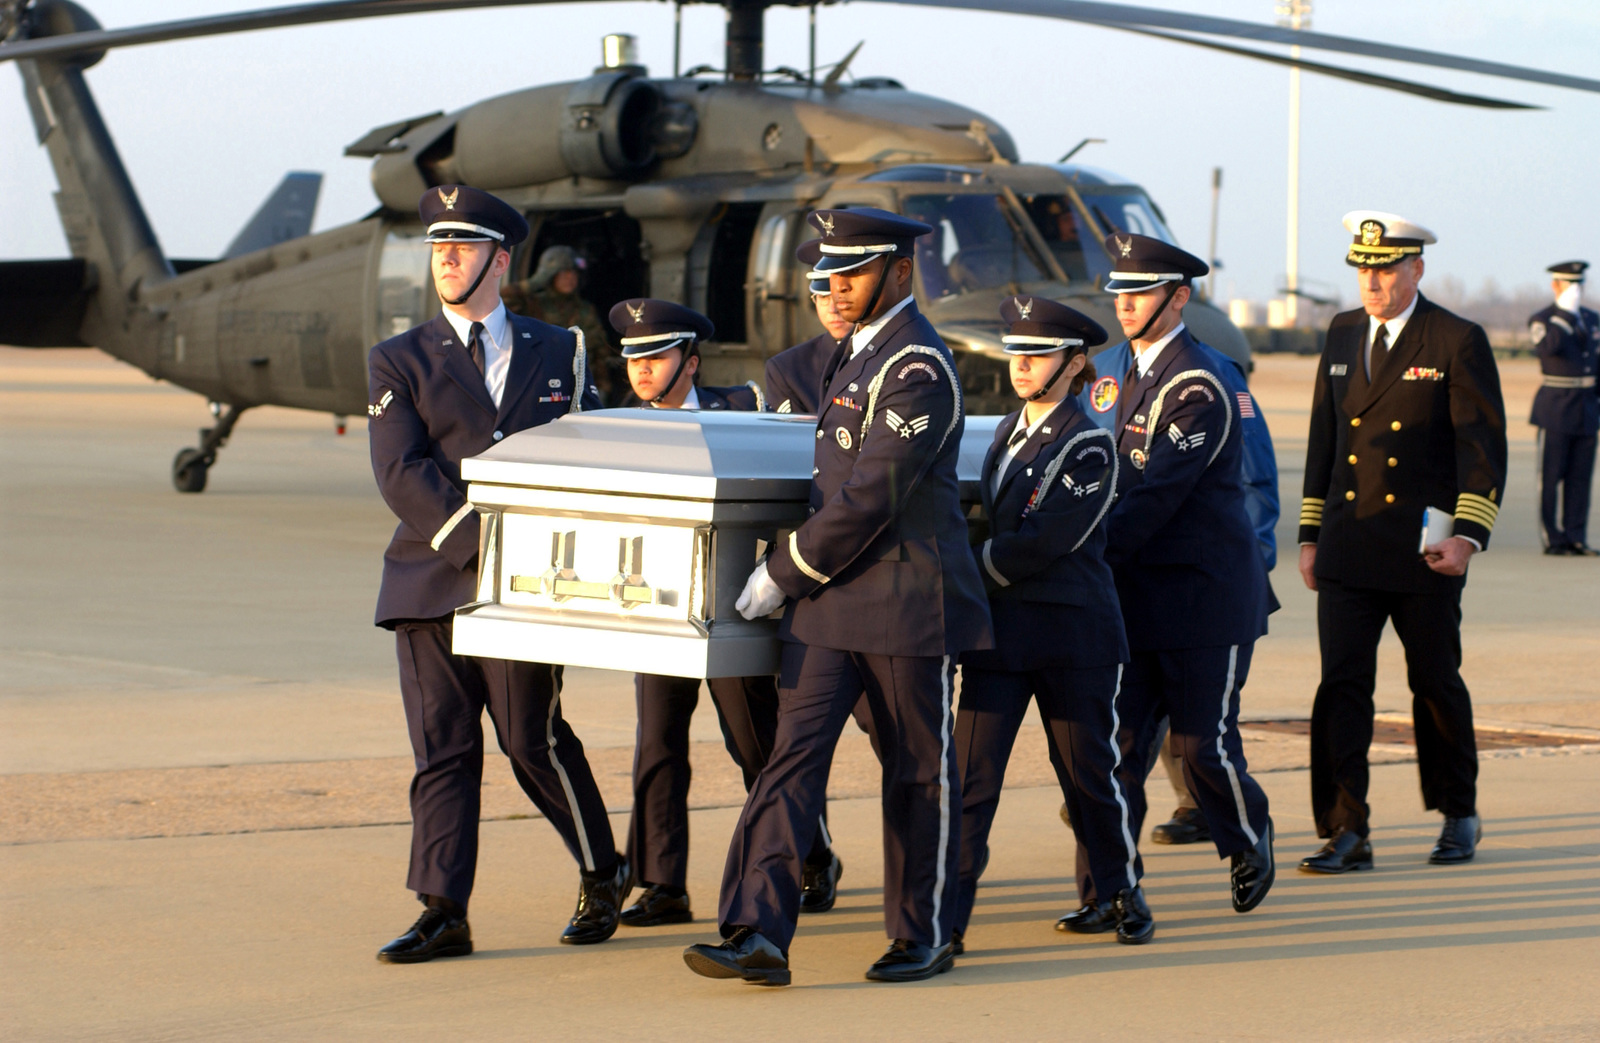 A US Air Force (USAF) Honor Guard transports a coffin carrying the remains of a crewmember from the space shuttle Columbia mishap, across the flight line at Barksdale Air Force Base, Louisiana (LA). Following the honor guard is Commander (CDR) Harold Robinson, USN Navy Reserve (USNR) Chaplain. A USAF HH-60 Black Hawk helicopter is parked in the background